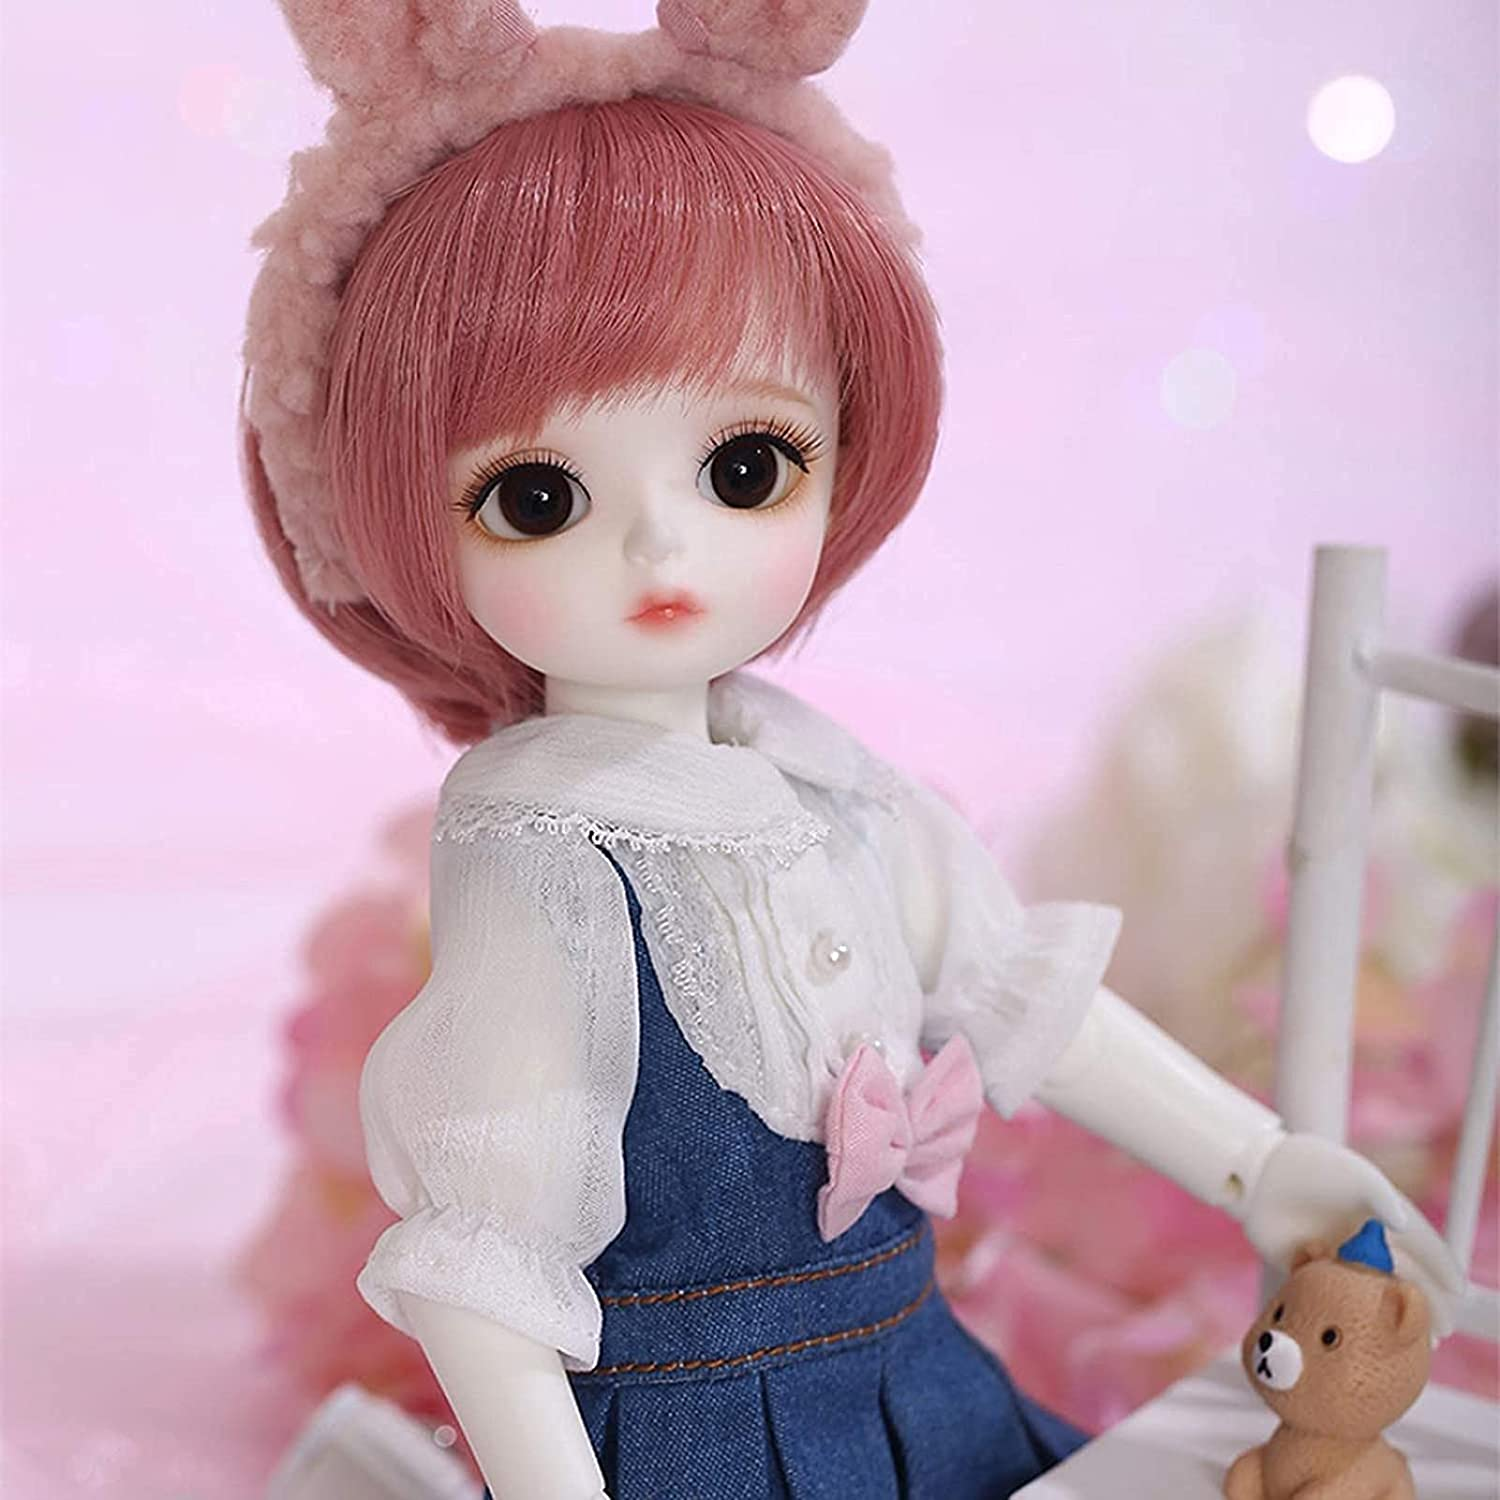 1 70% OFF Ranking TOP12 Outlet 6 BJD Doll 26cm Fashion Style SD Ball Do Movable Jointed Dolls